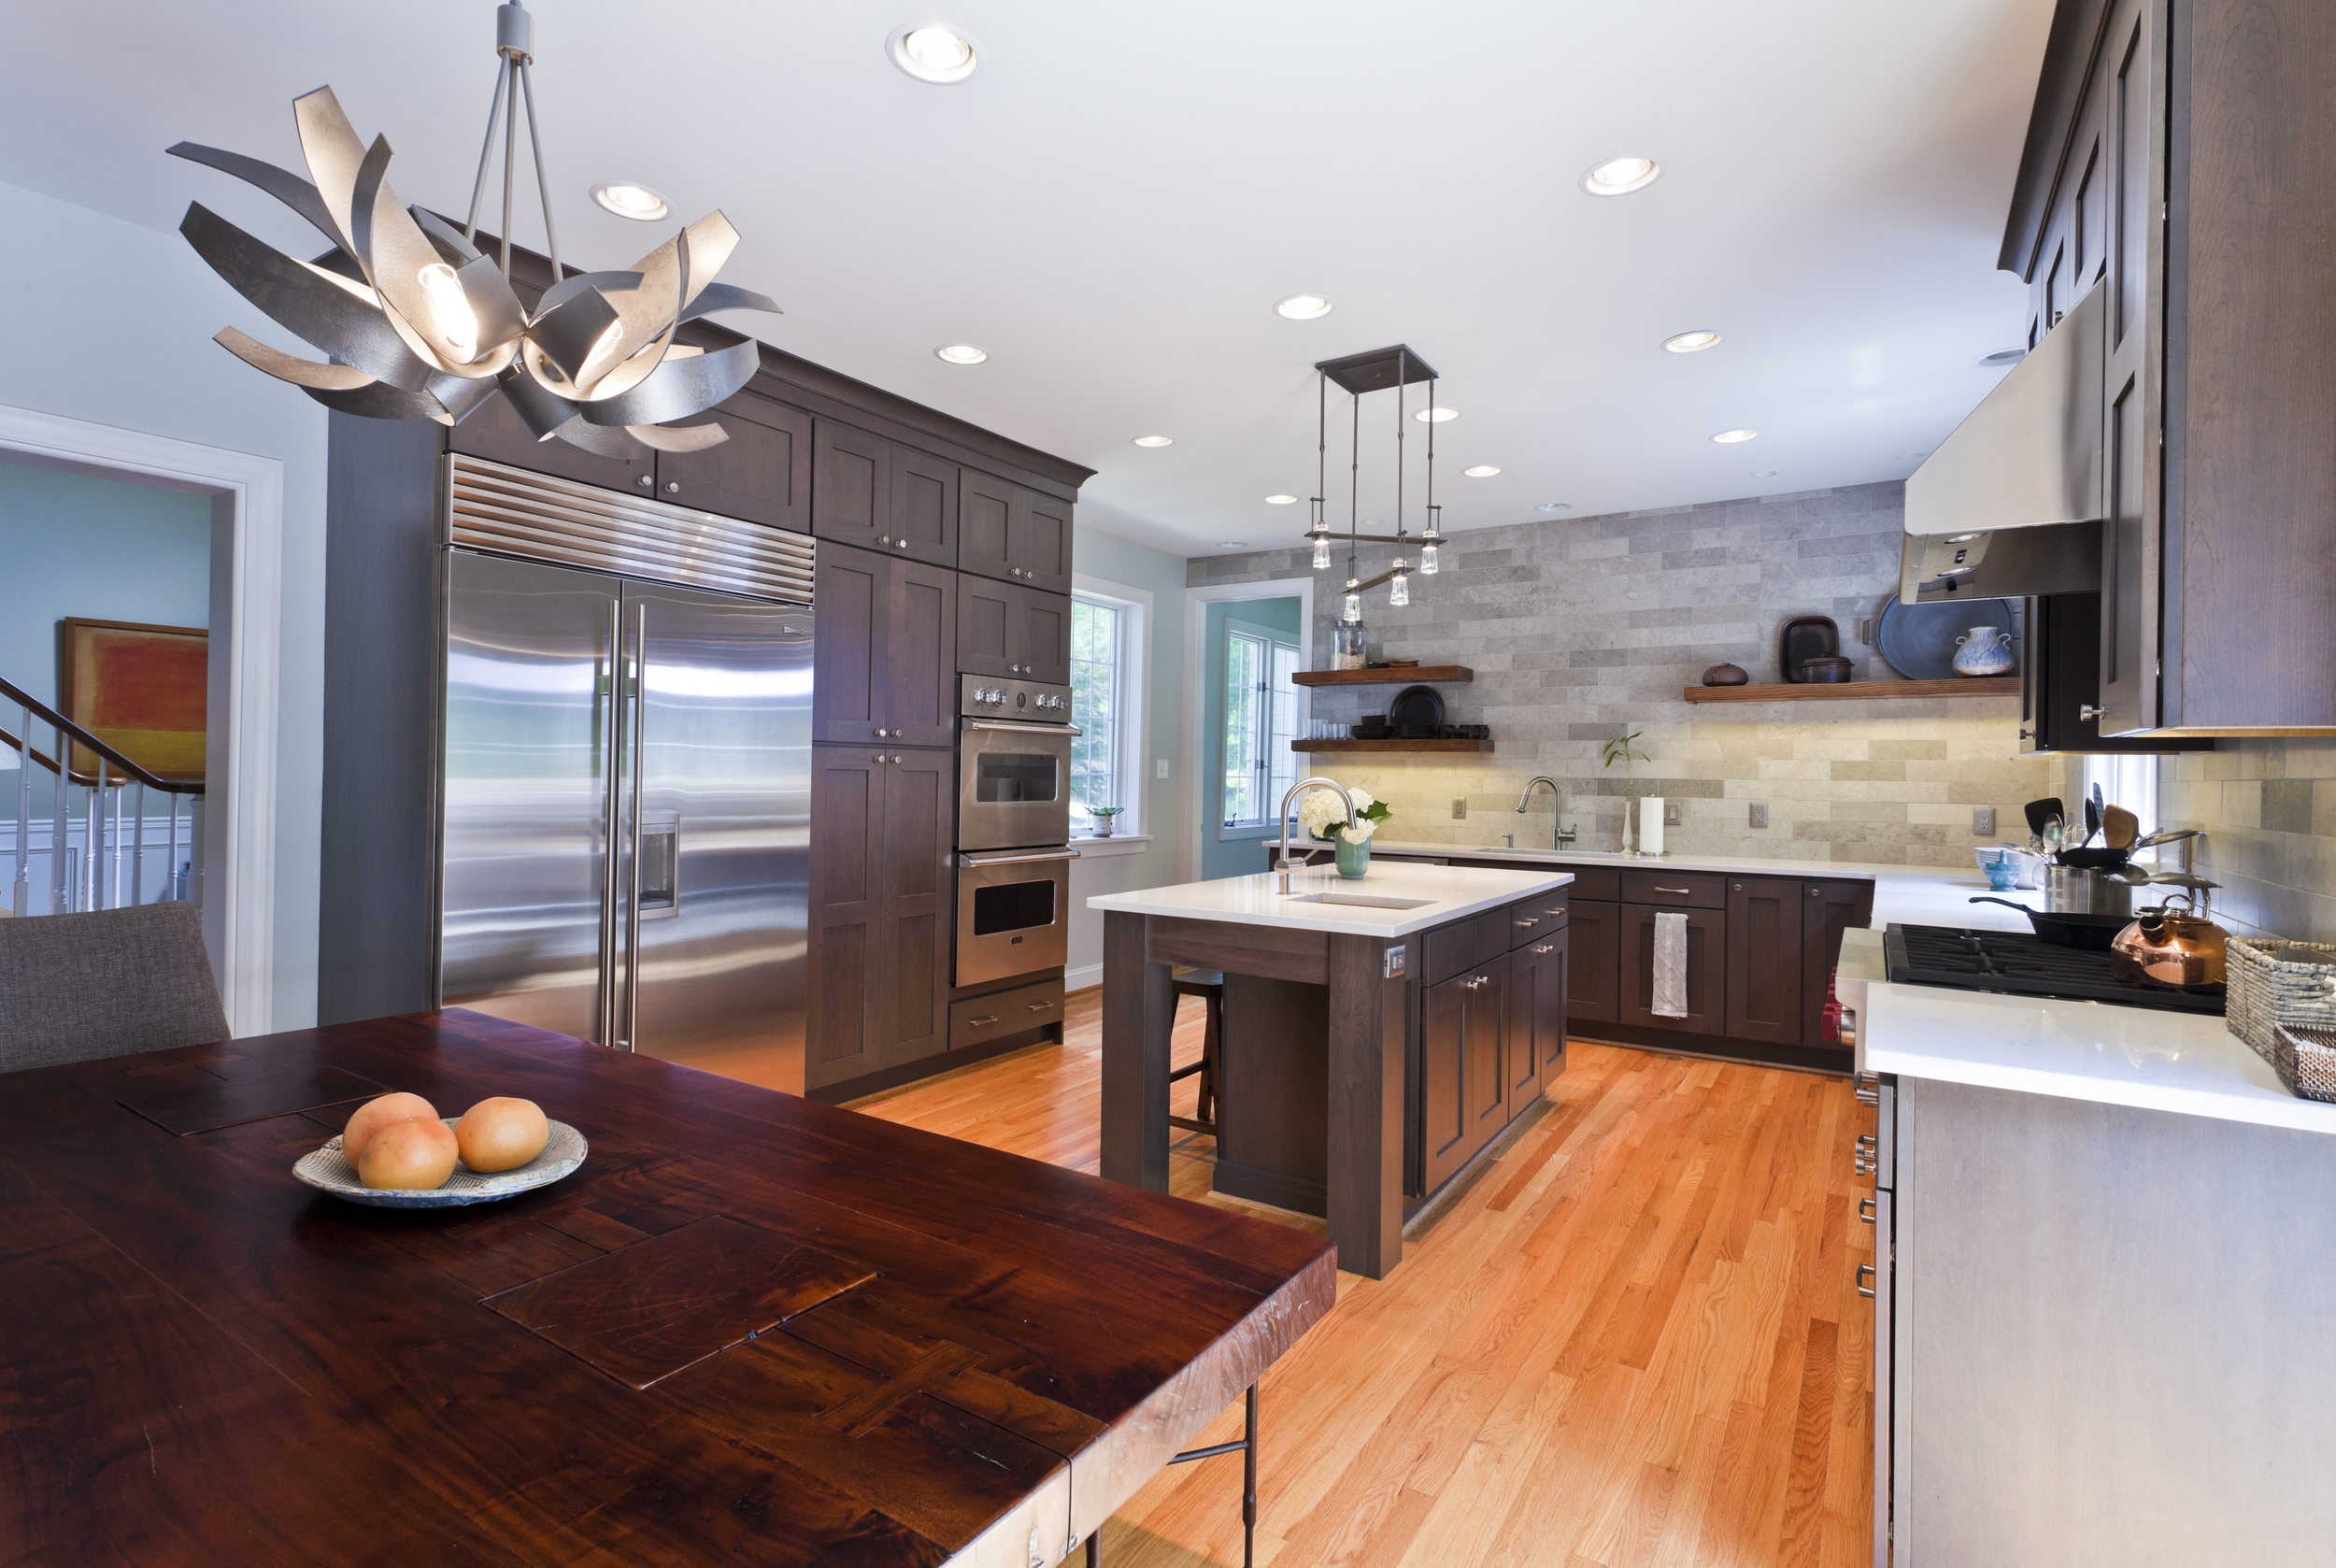 Built in appliances complete the open look to this new family gathering space. Enough room to cook and entertain!